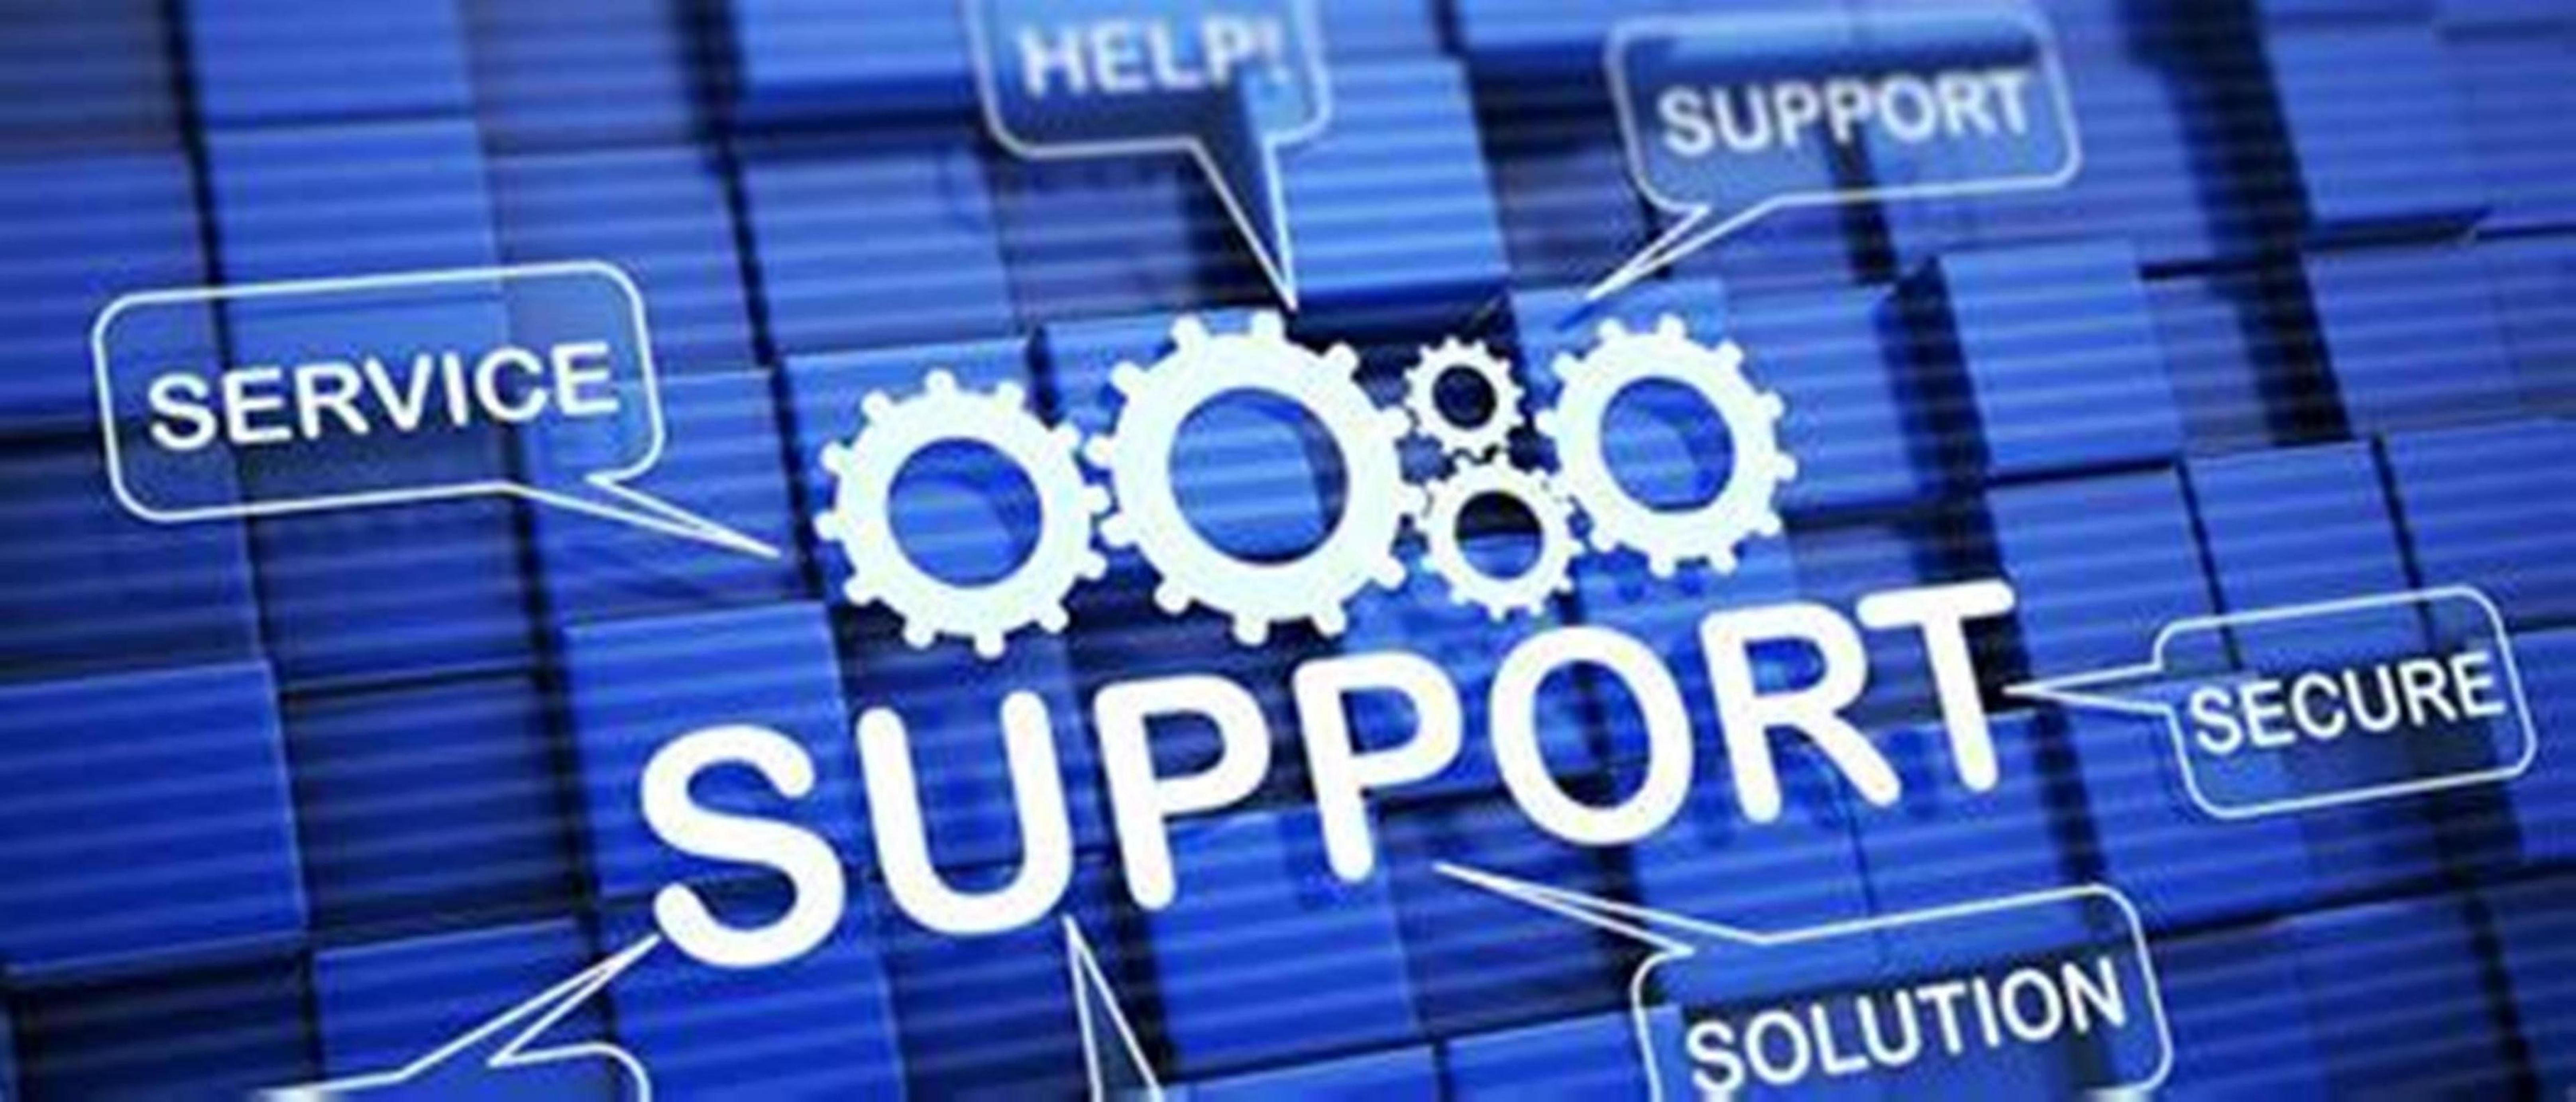 Dell Computer Support Computer support, Printing